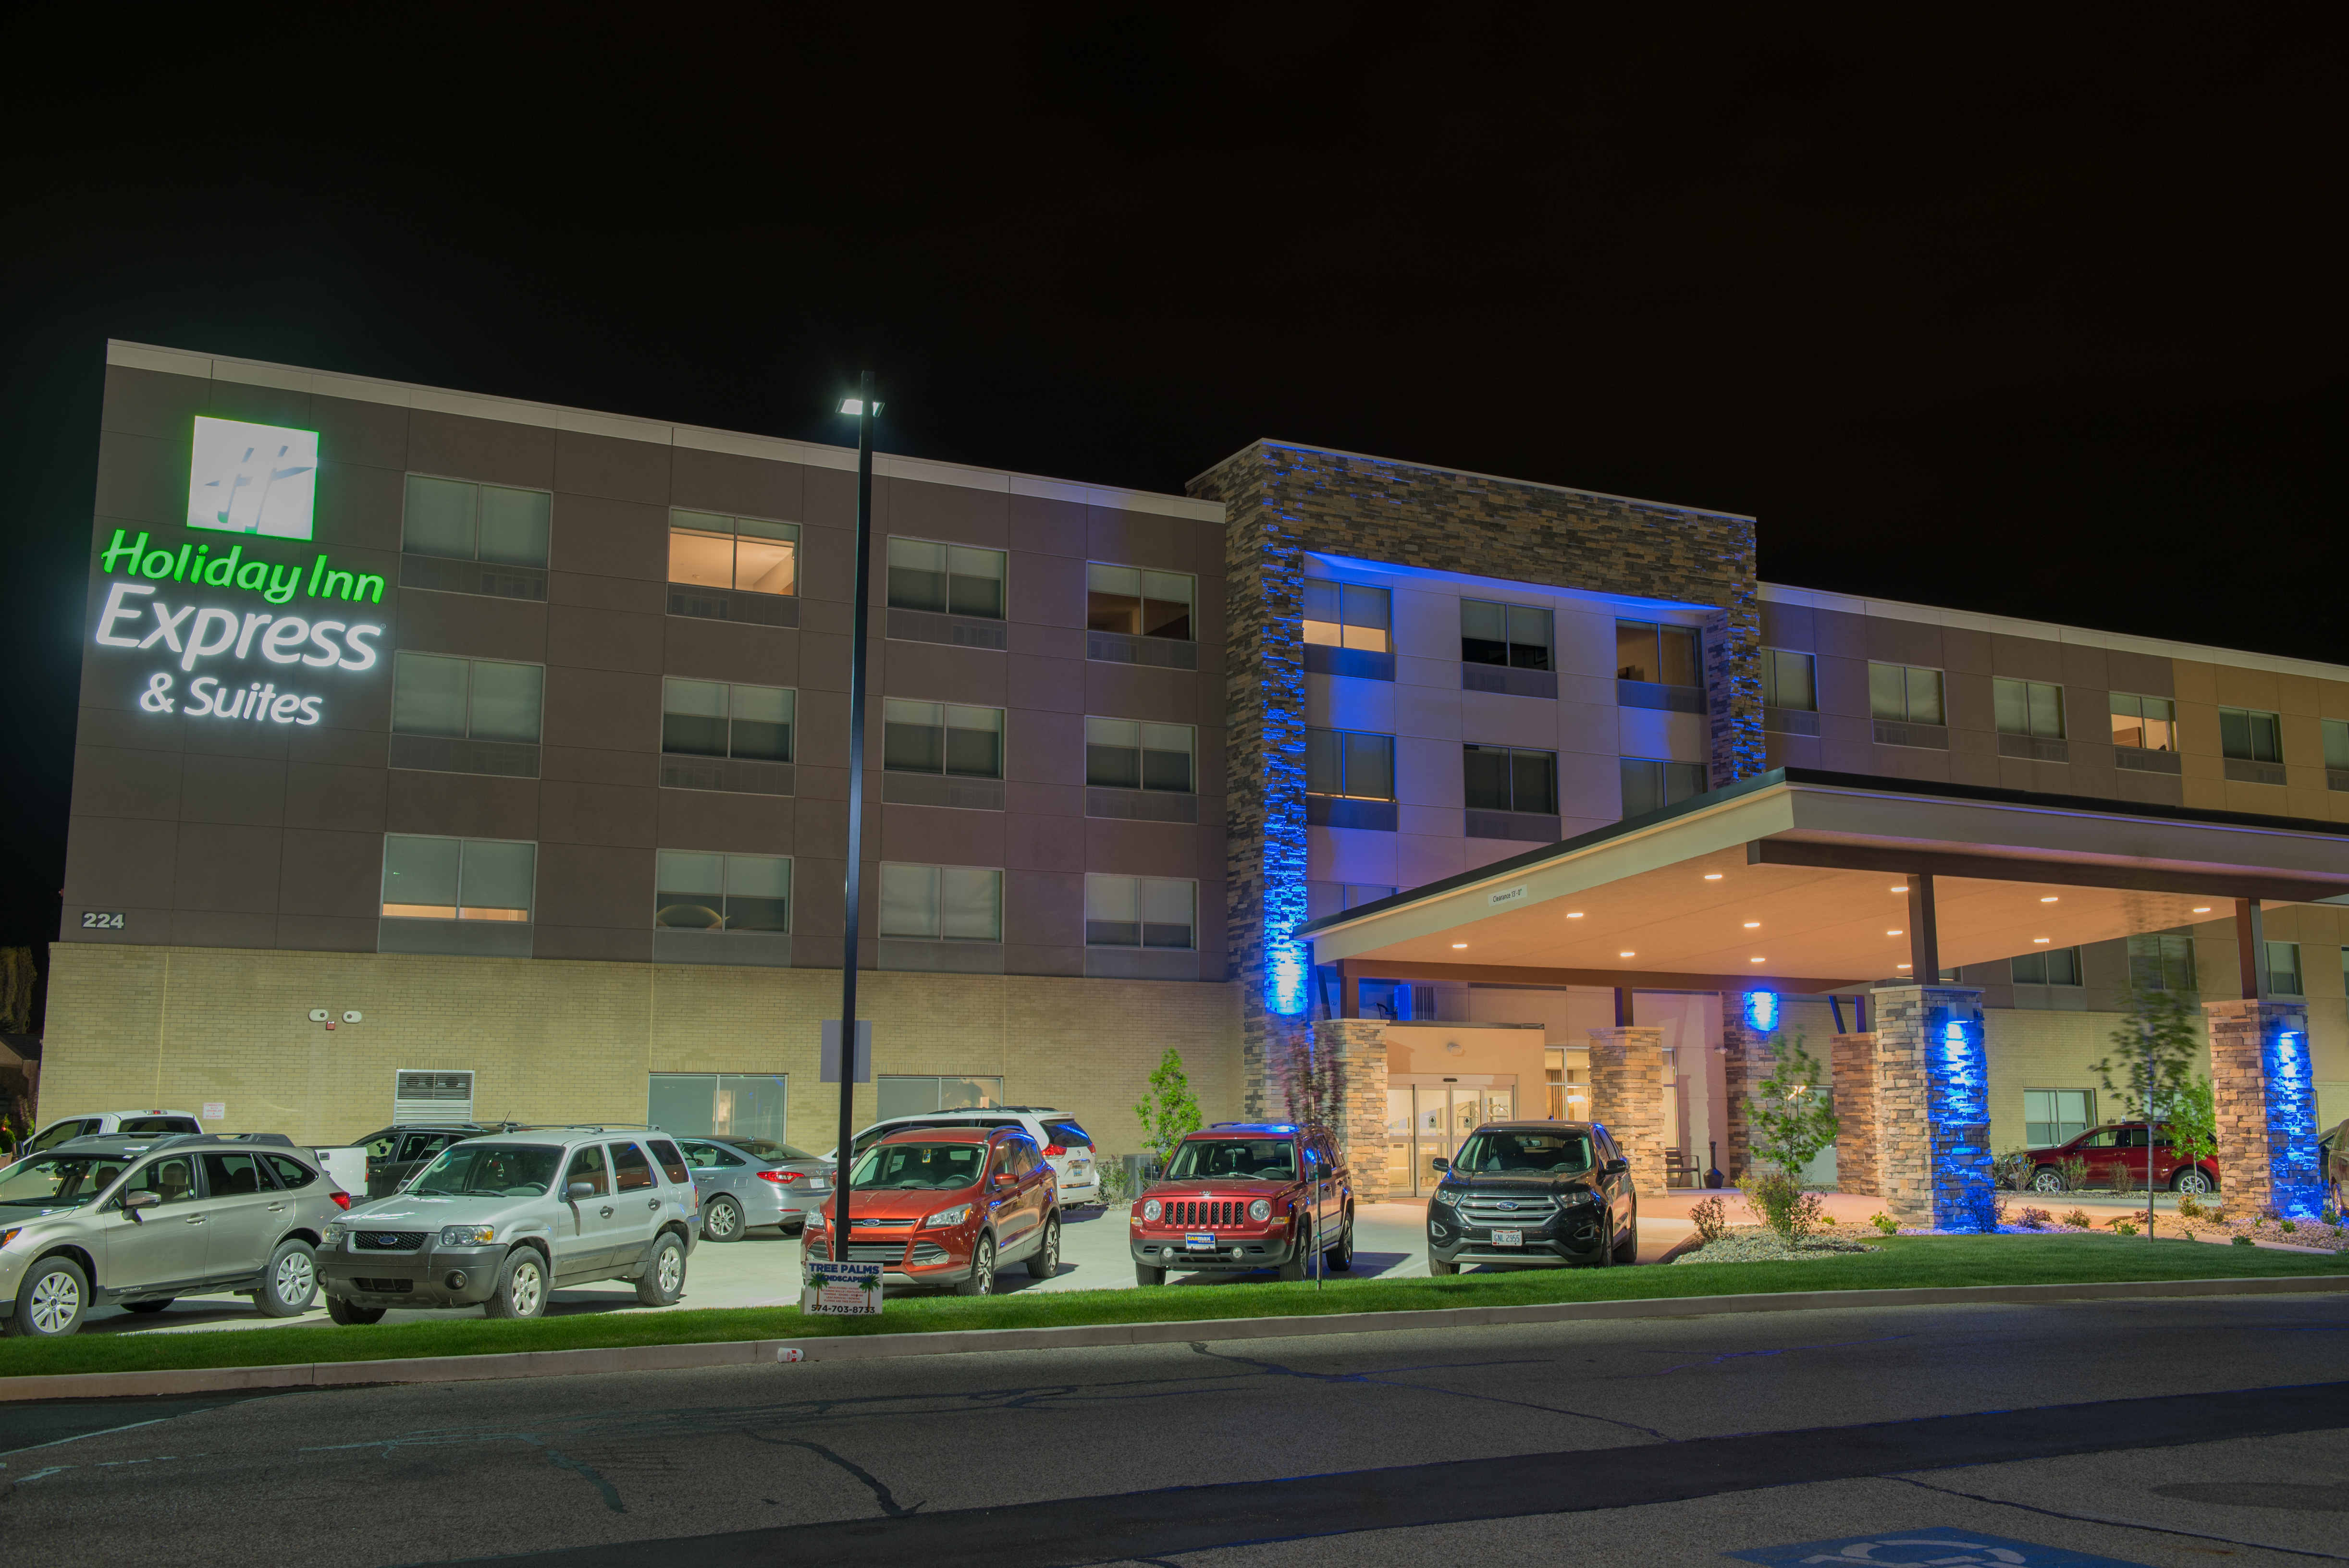 Holiday Inn Express & Suites (New) nighttime